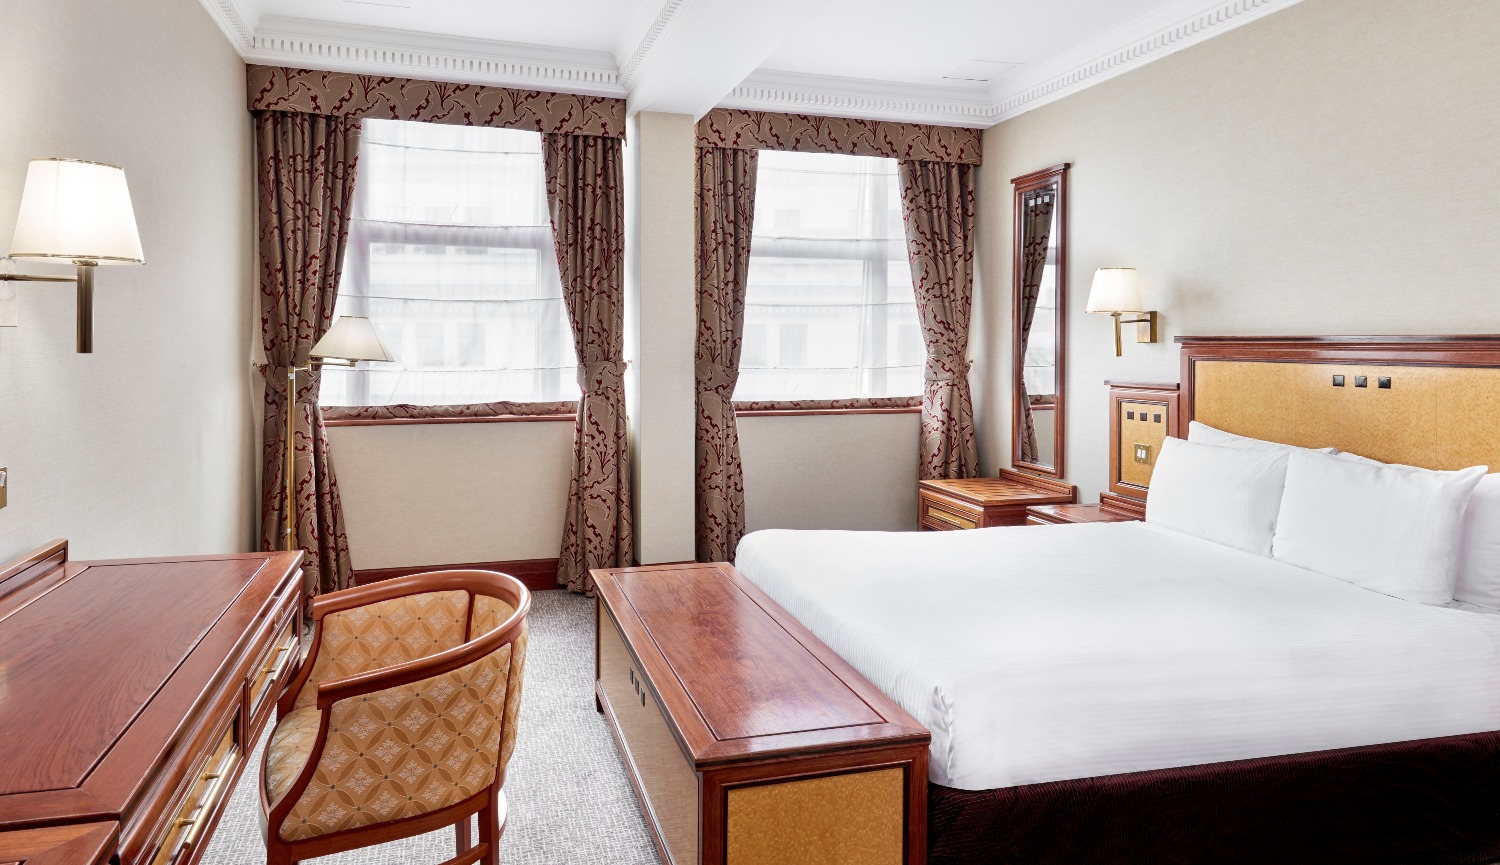 Jurys Inn London Holborn